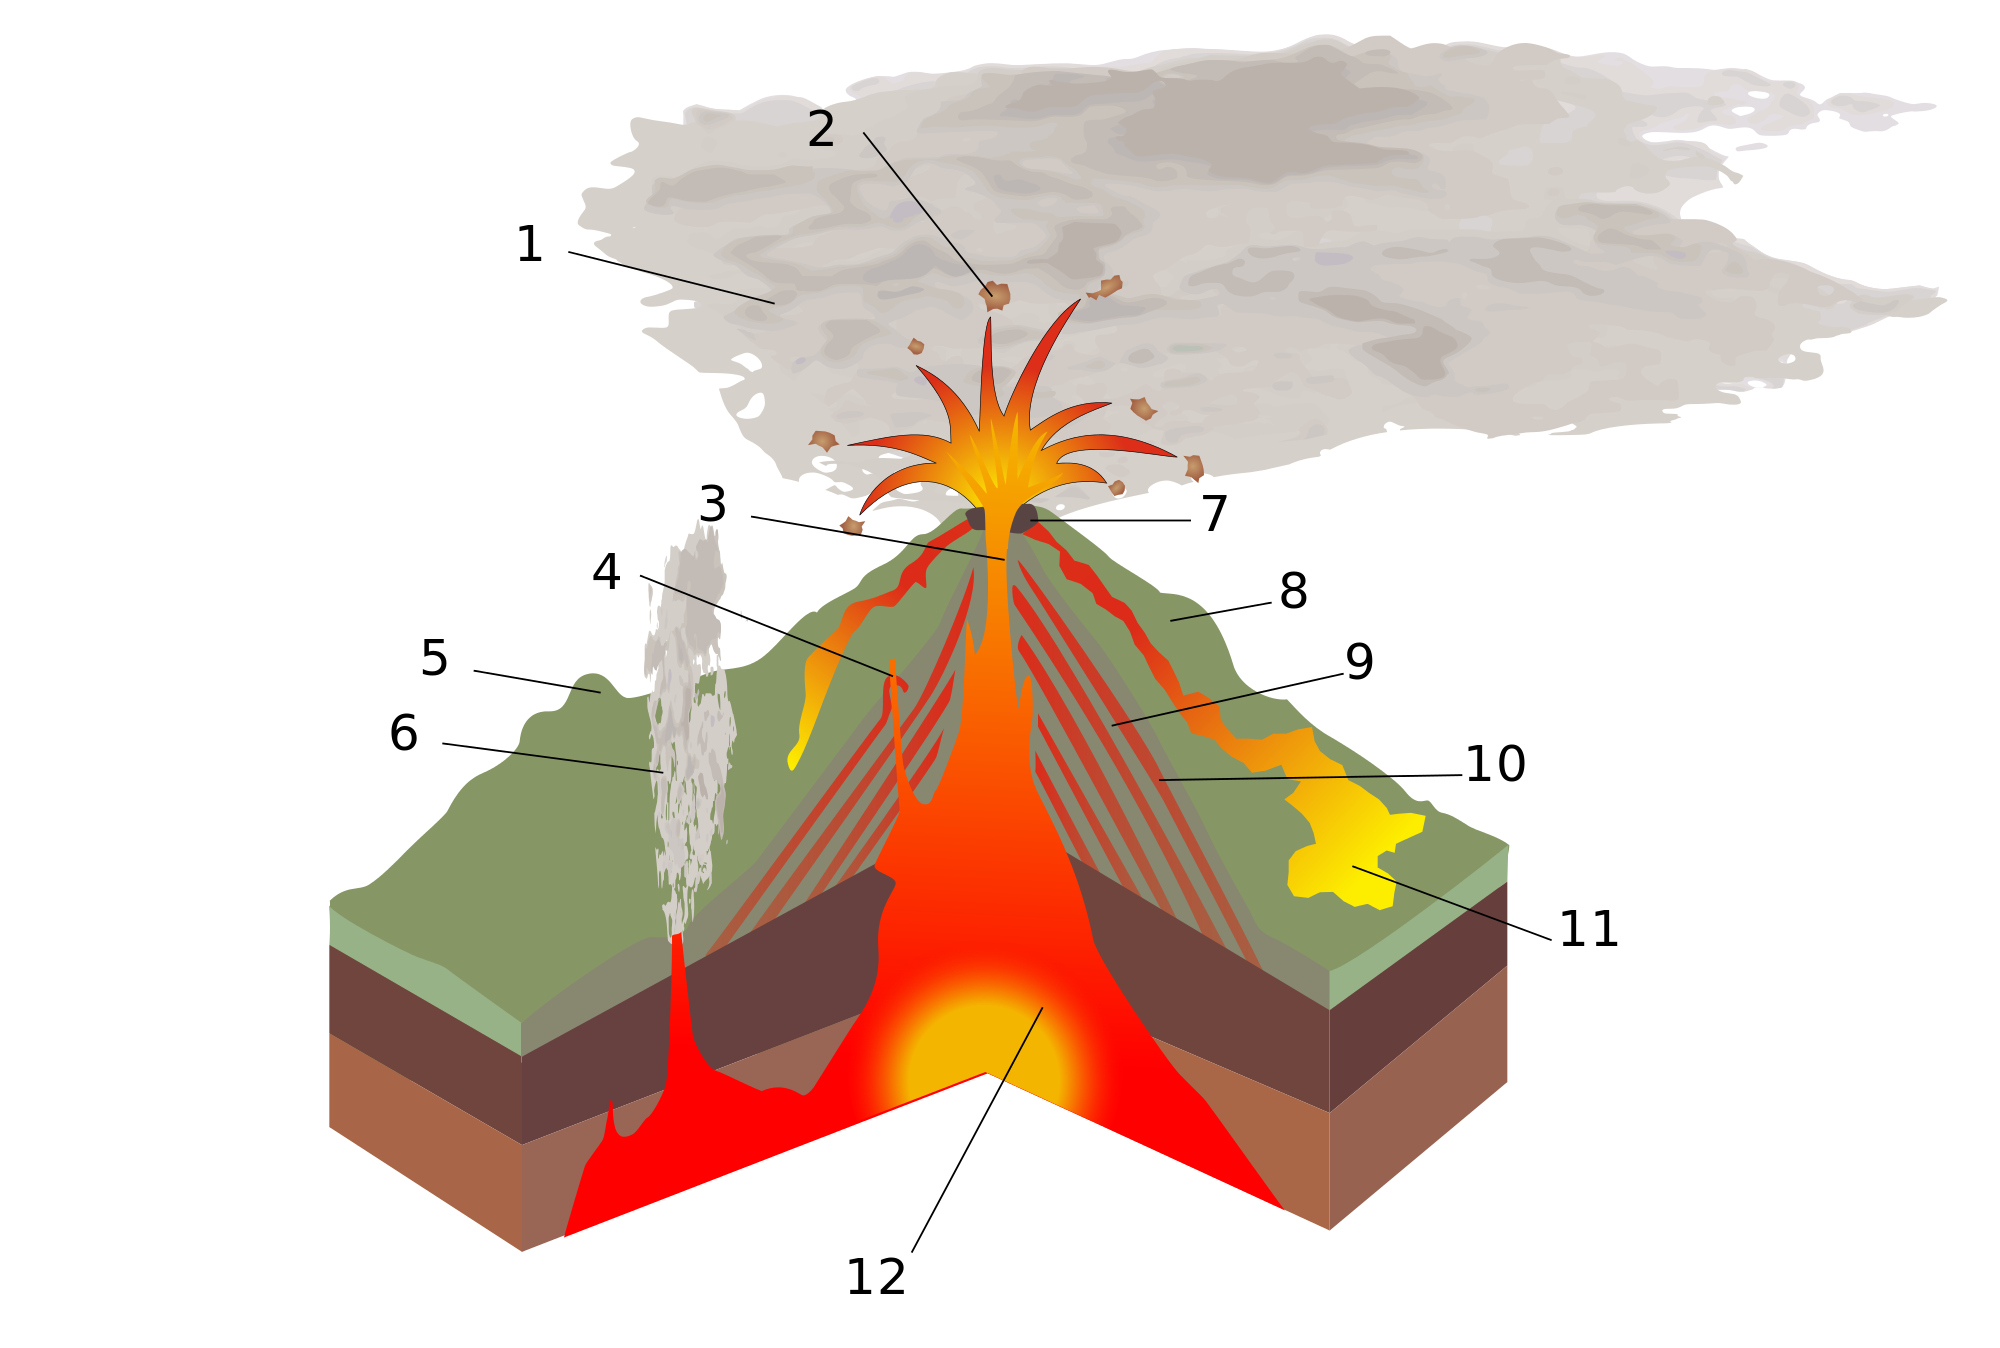 Transparent volcano svg. File structure numbered wikimedia